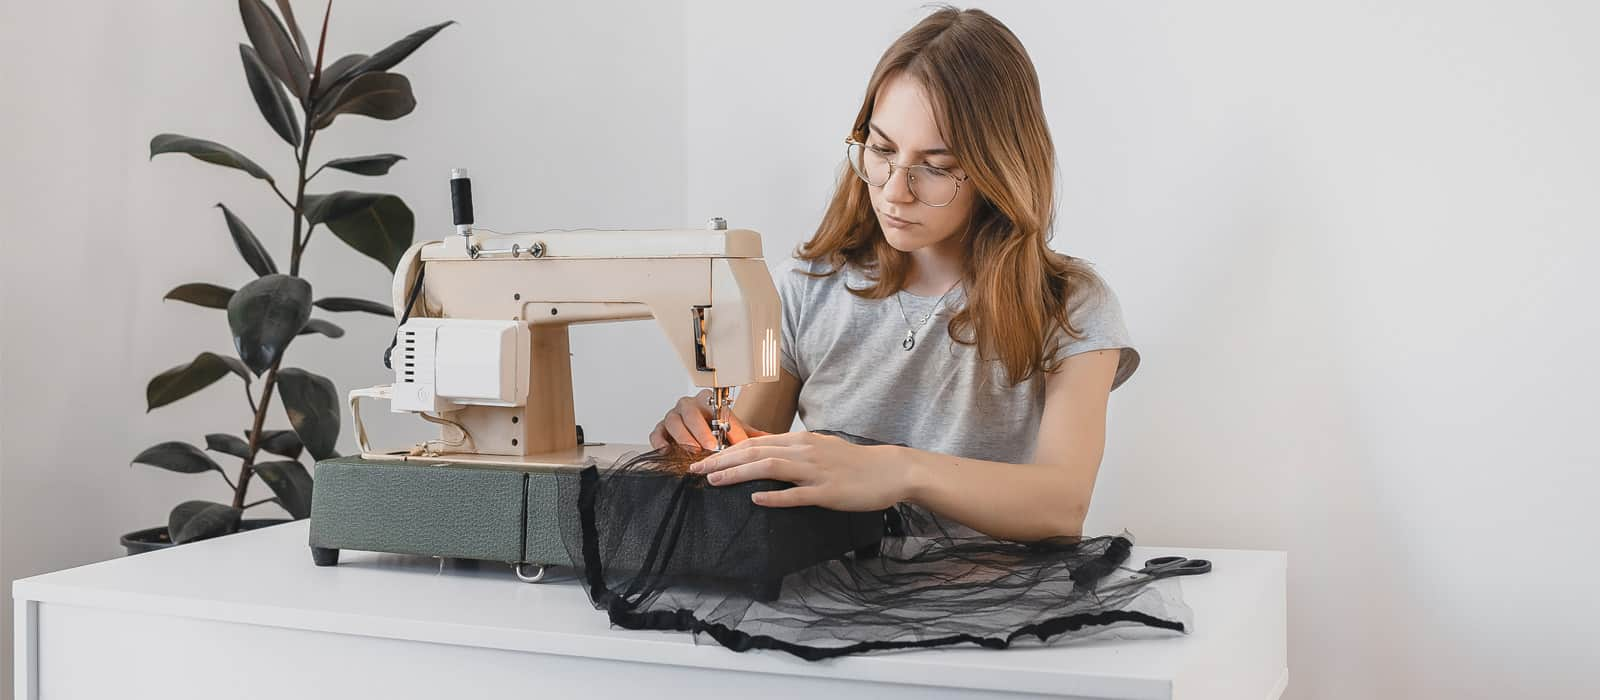 Female teen using sewing machine next to plant